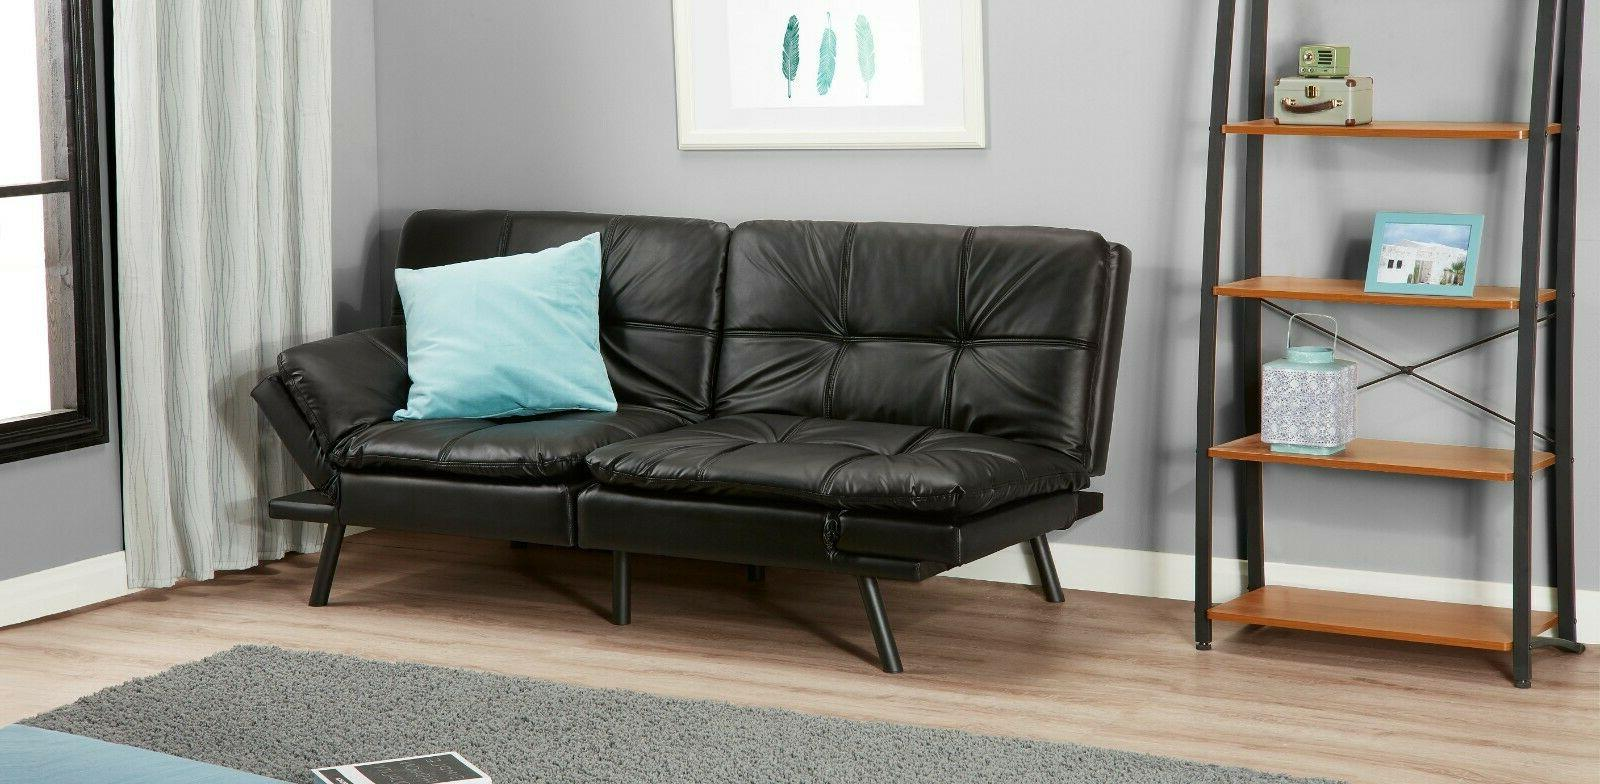 Futon Sofa Futons Couch Lounger For Living Room